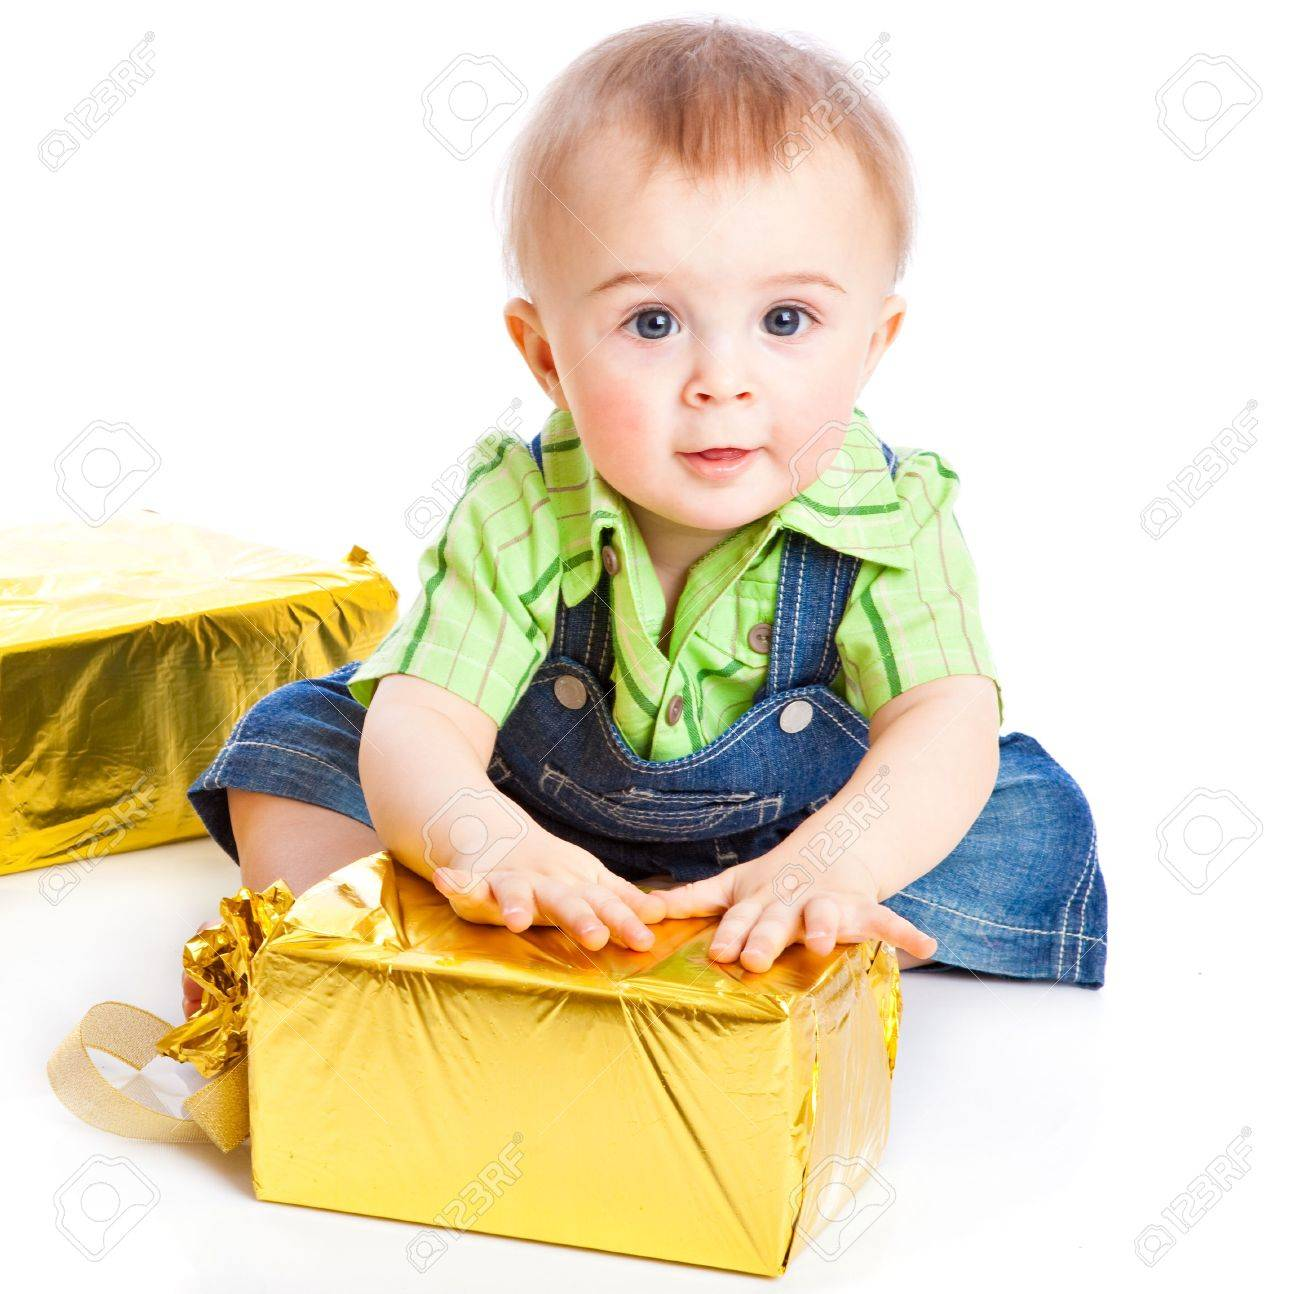 Baby with gifts. Isolated on white background Stock Photo - 6865977